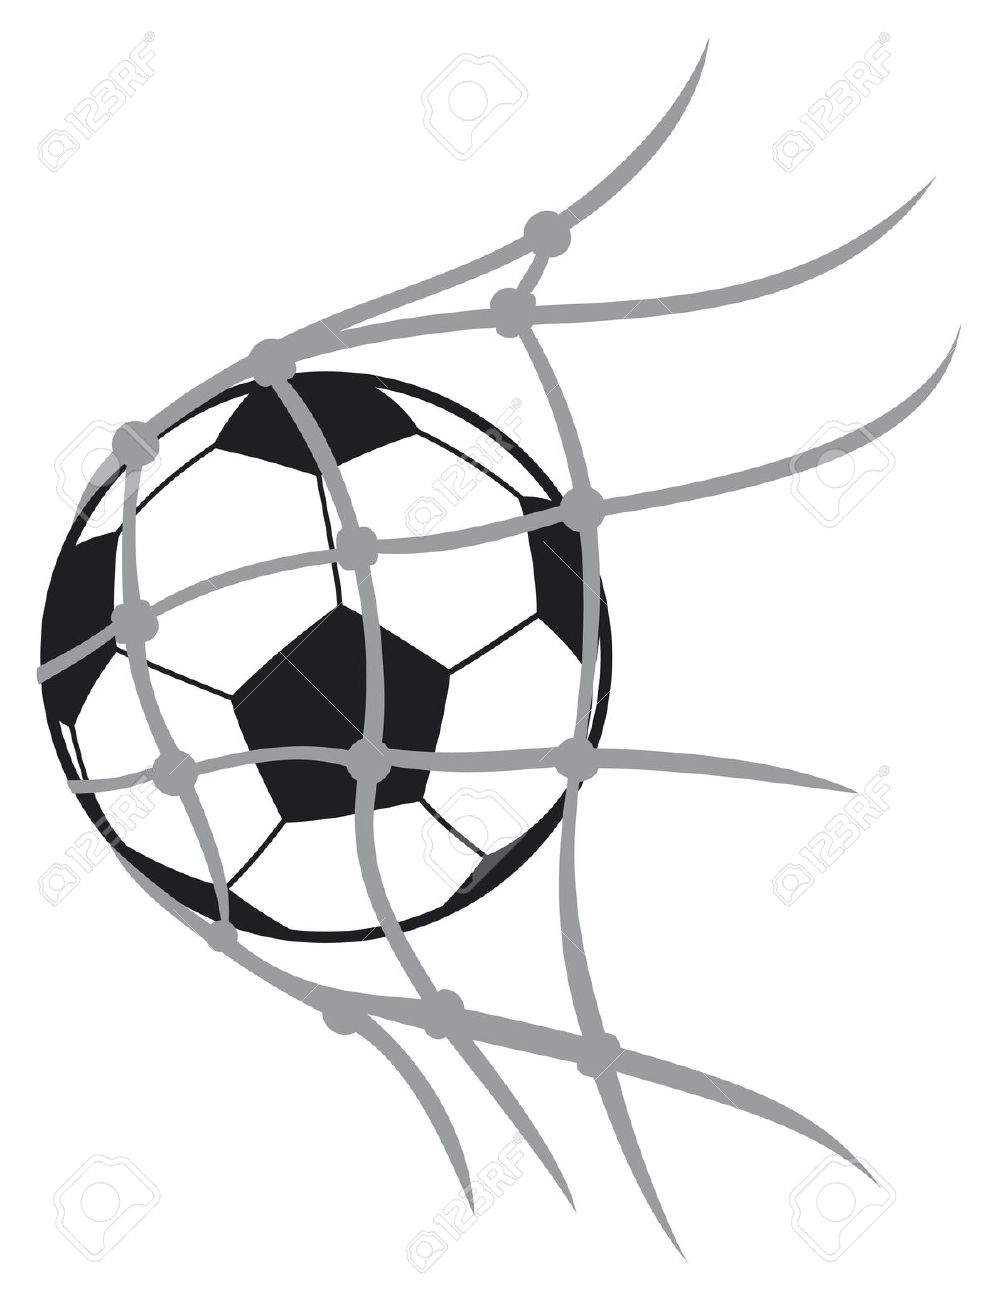 998x1300 Soccer Ball And Goal Clipart Amp Soccer Ball And Goal Clip Art